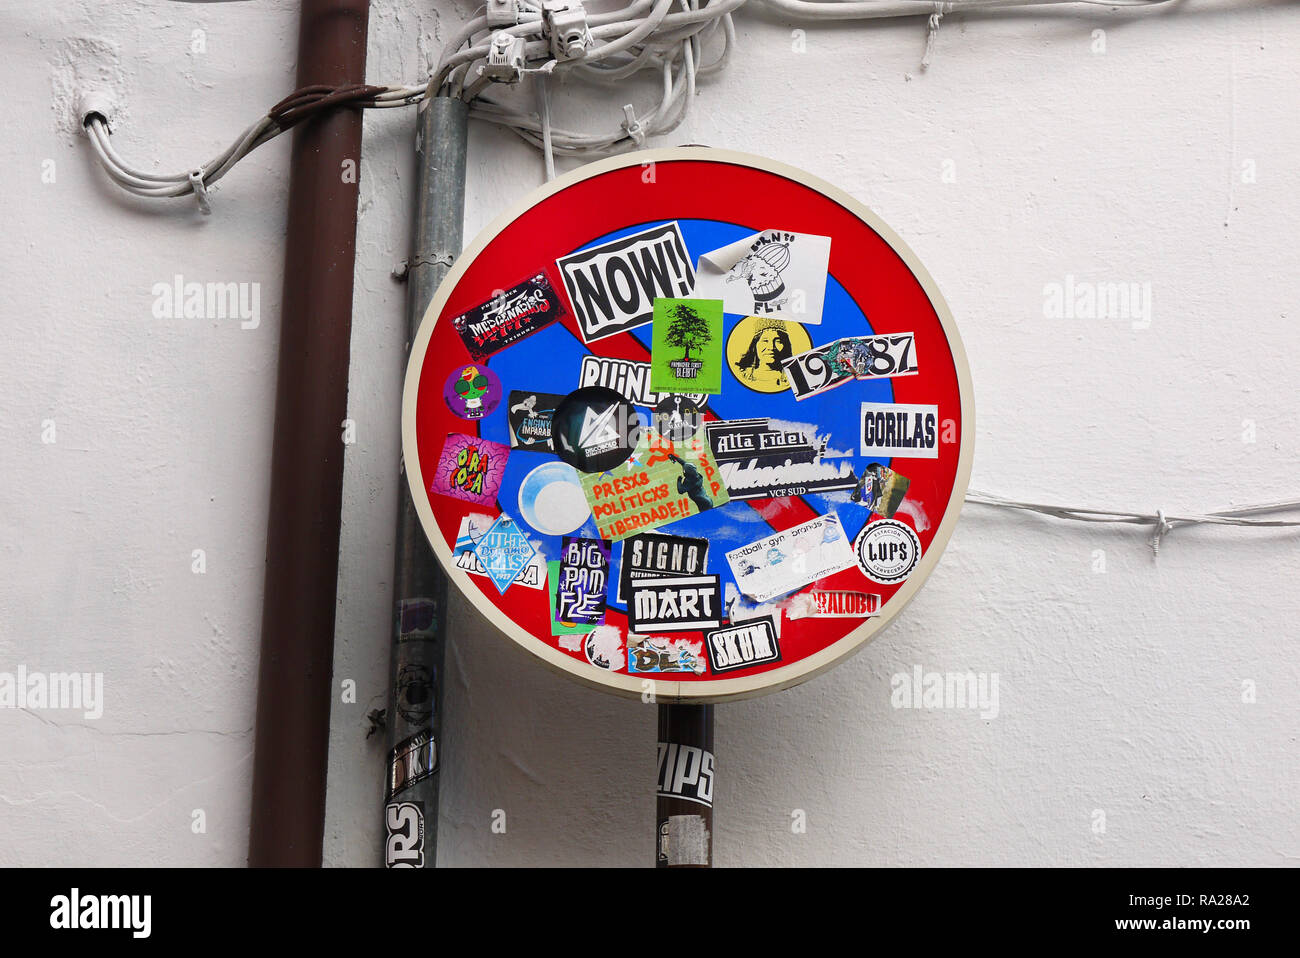 No waiting street sign covered in stickers in Granada, Spain. - Stock Image